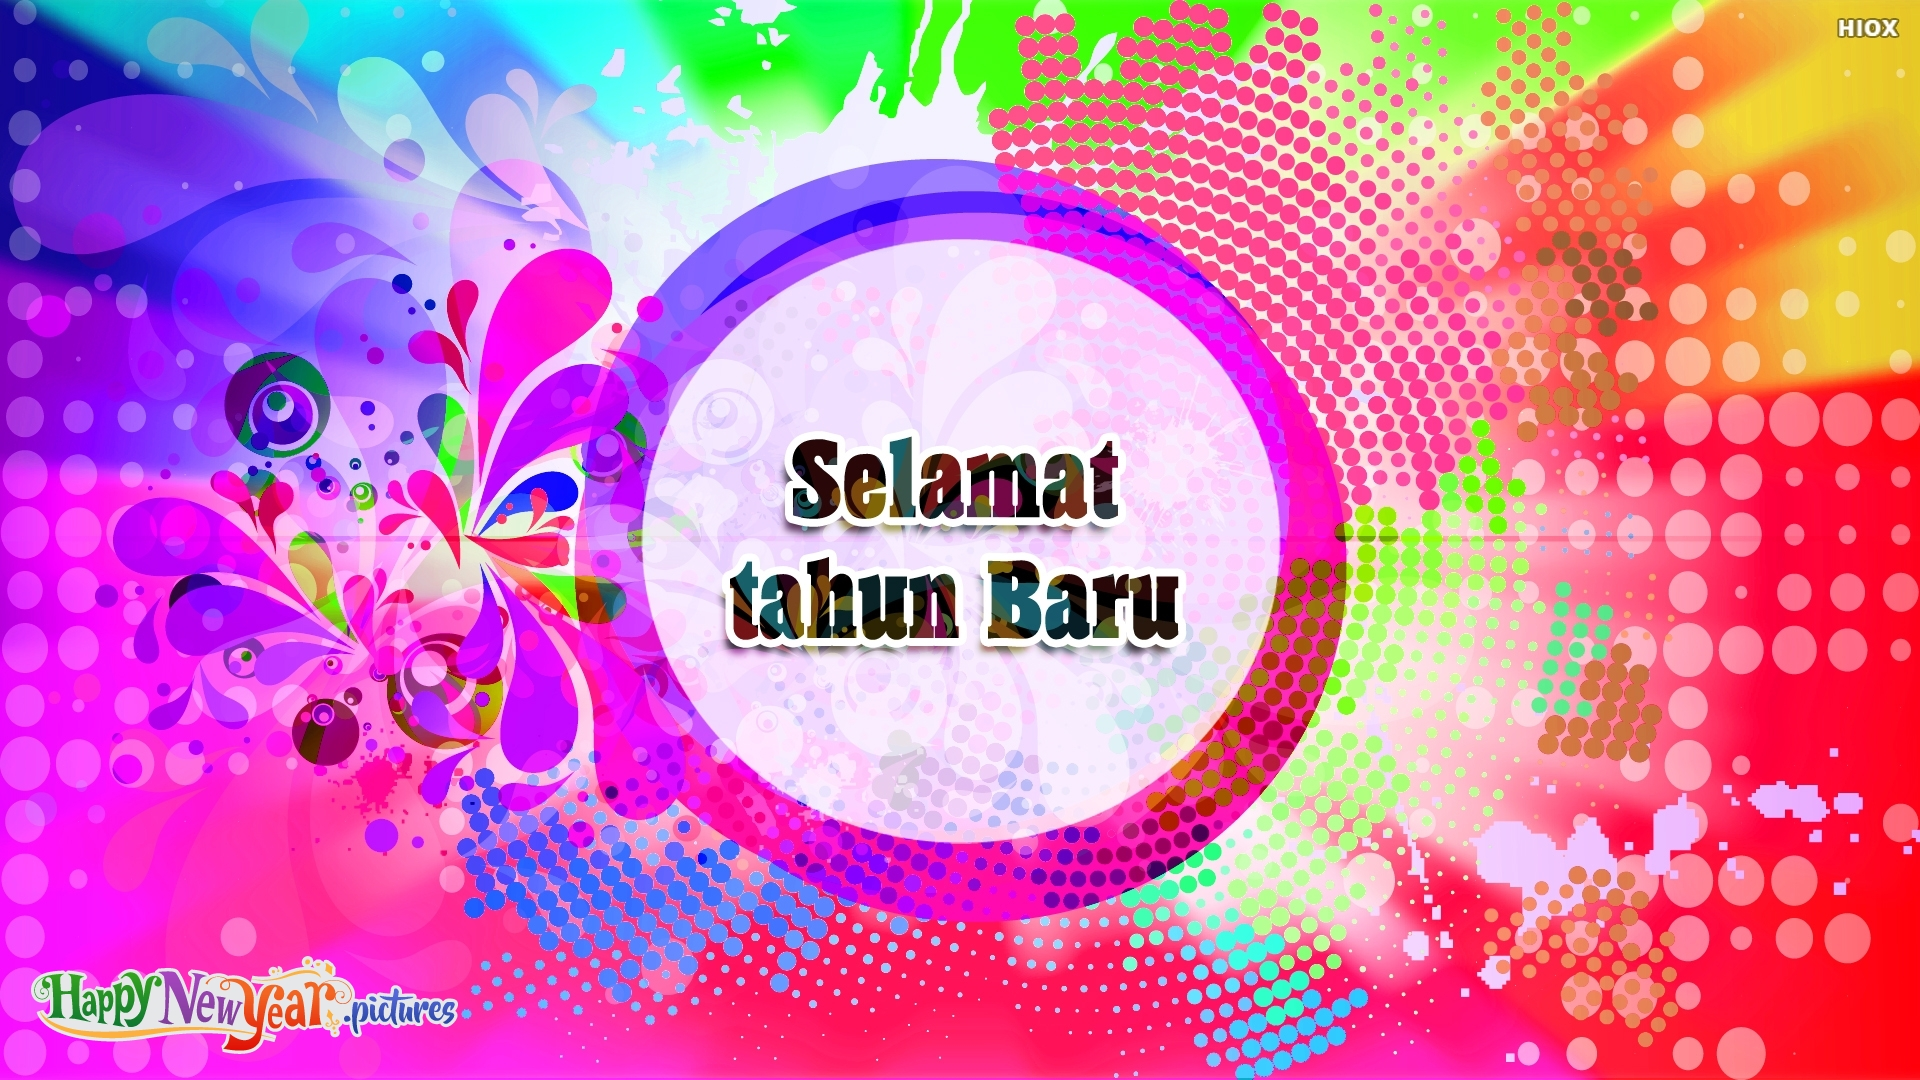 Advance Happy New Year Wishes In Malay